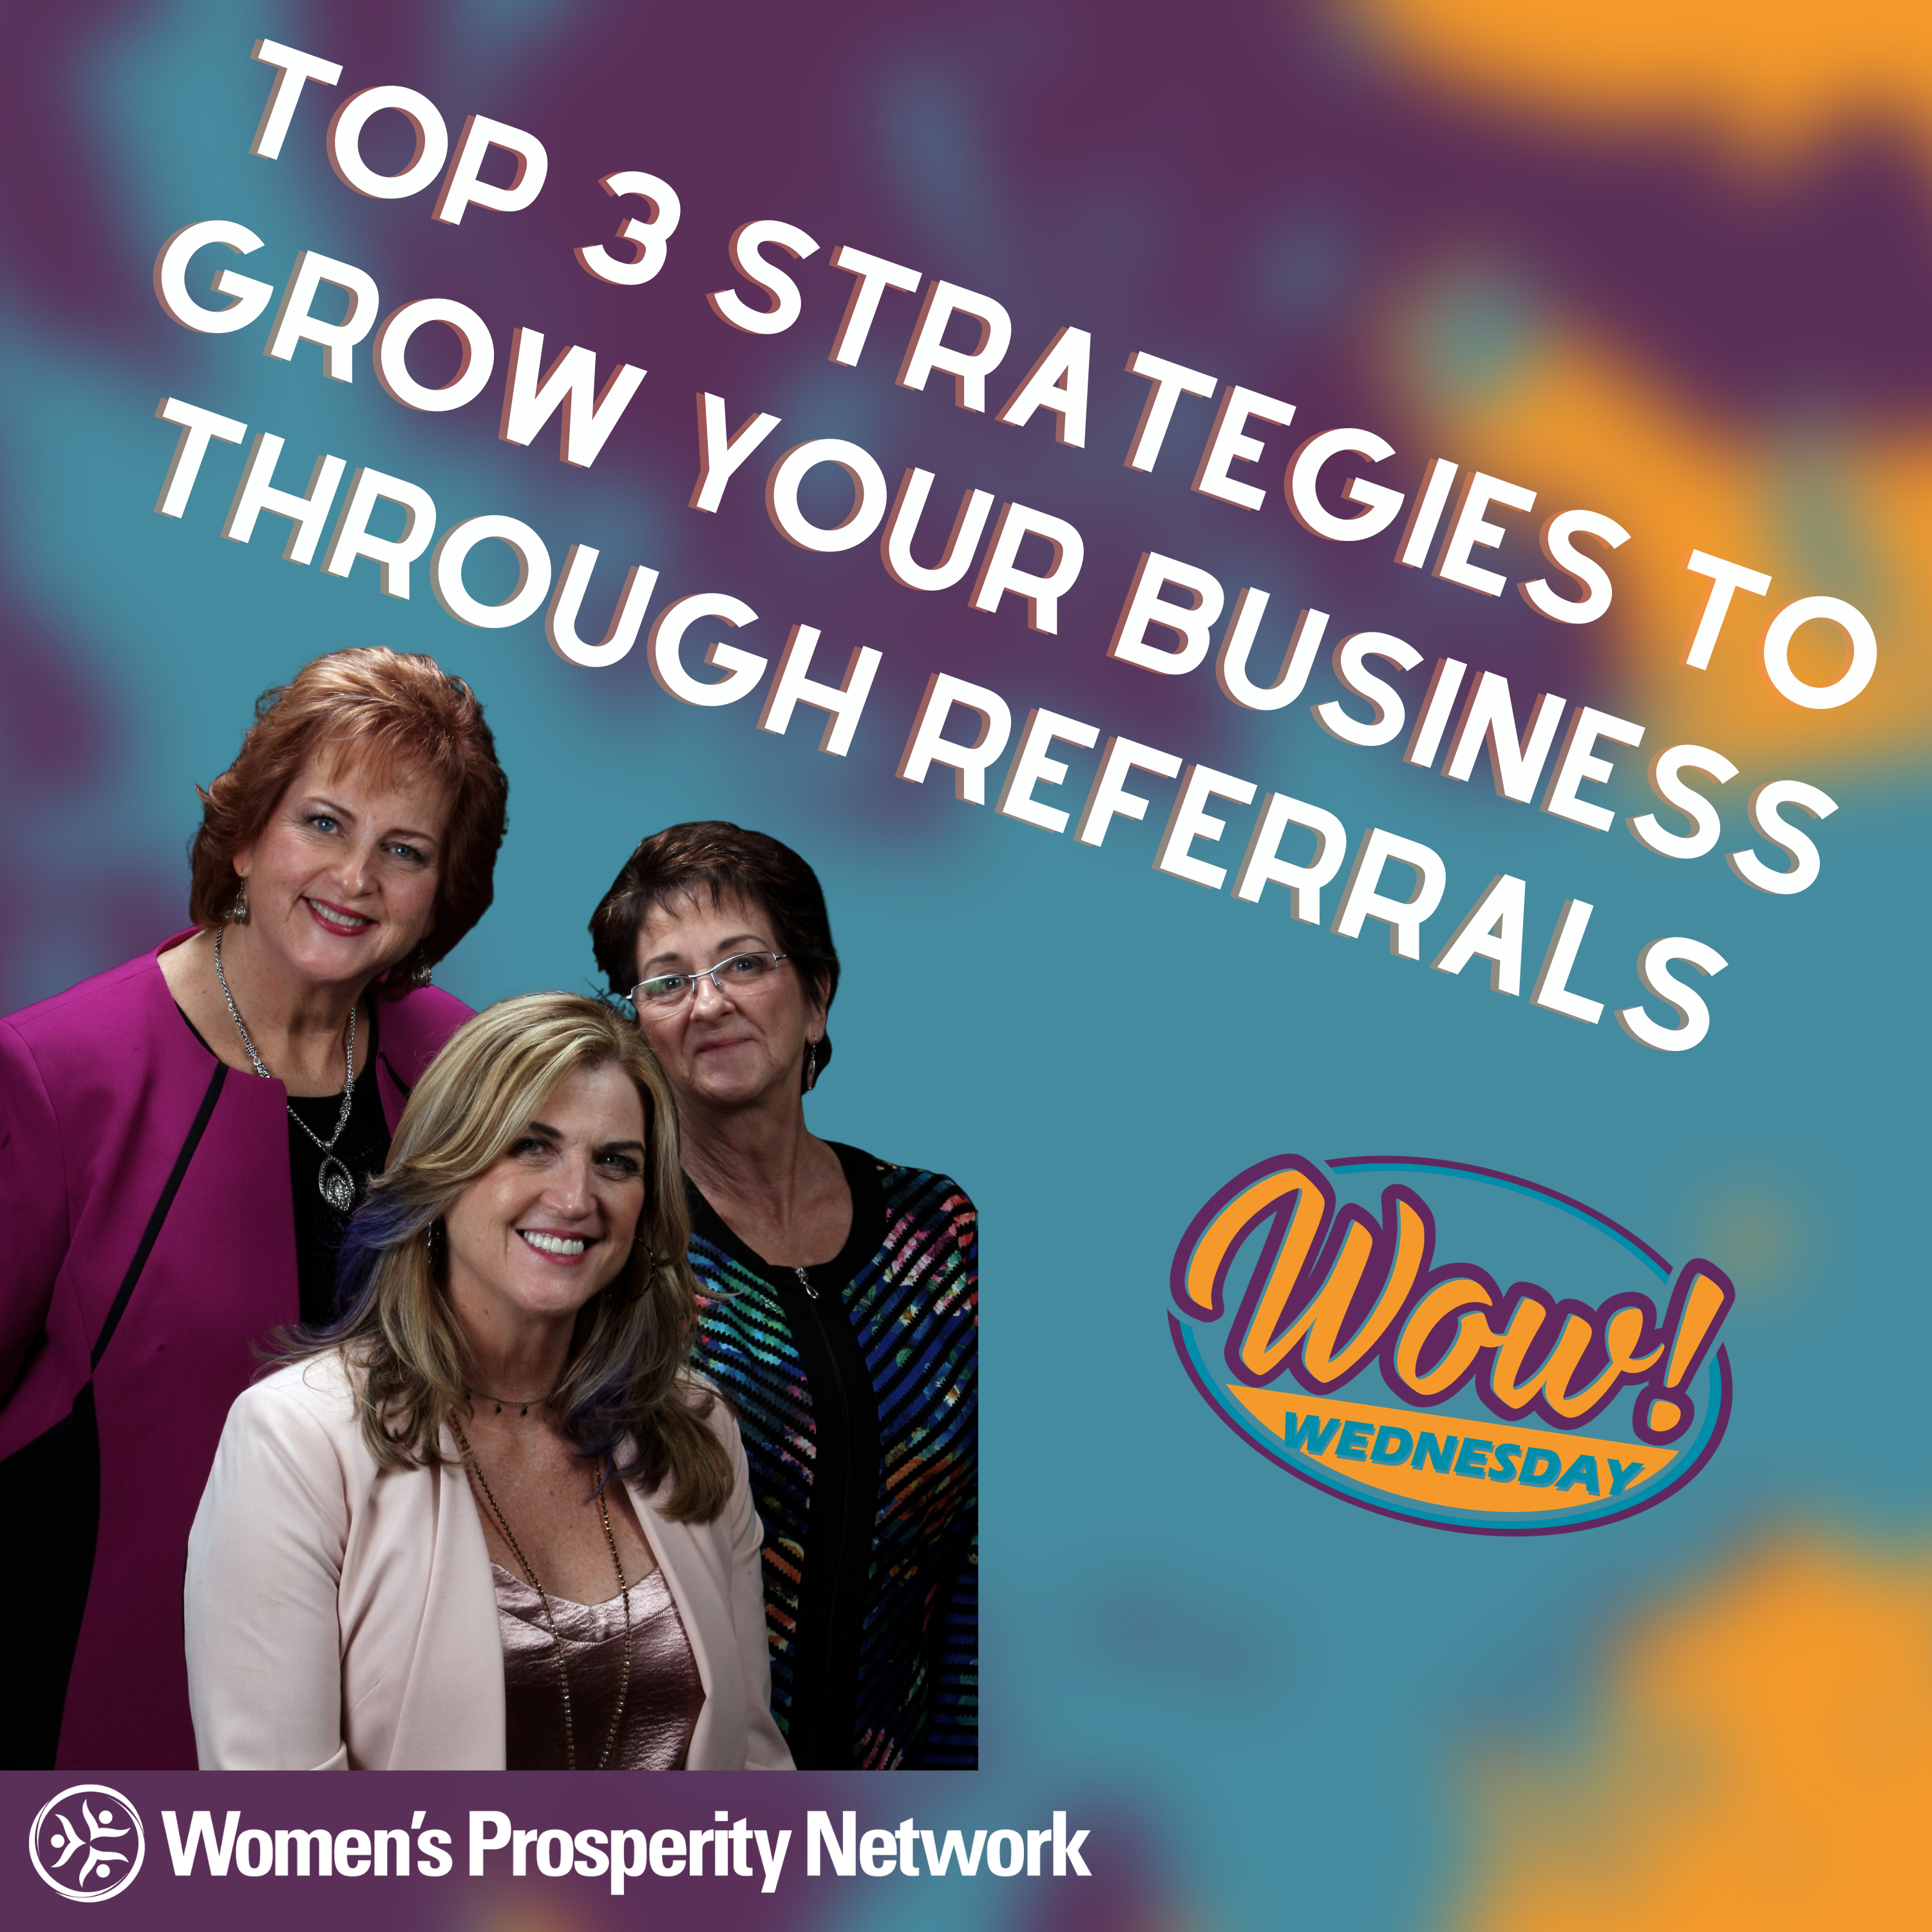 Top 3 Strategies to Grow Your Business Through Referrals with Trish, Susan & Nancy Co-Founders of Women's Prosperity Network